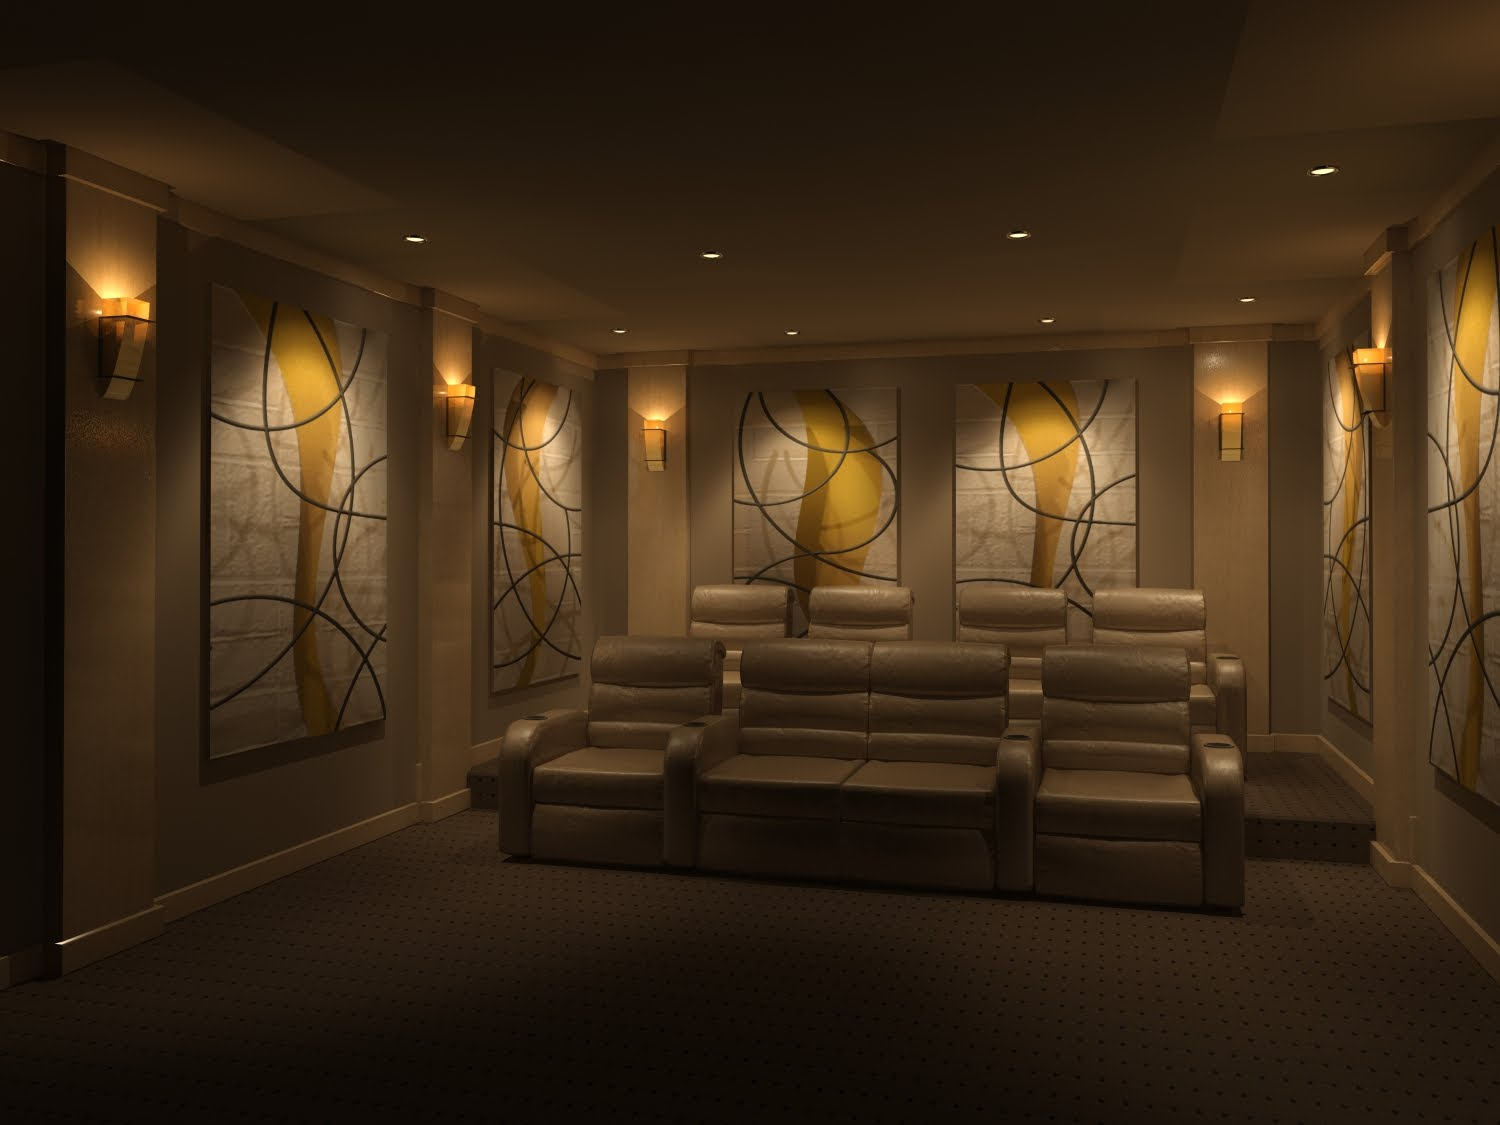 Home theater design and beyond by 3 d squared inc home theater room - Home cinema design ideas ...